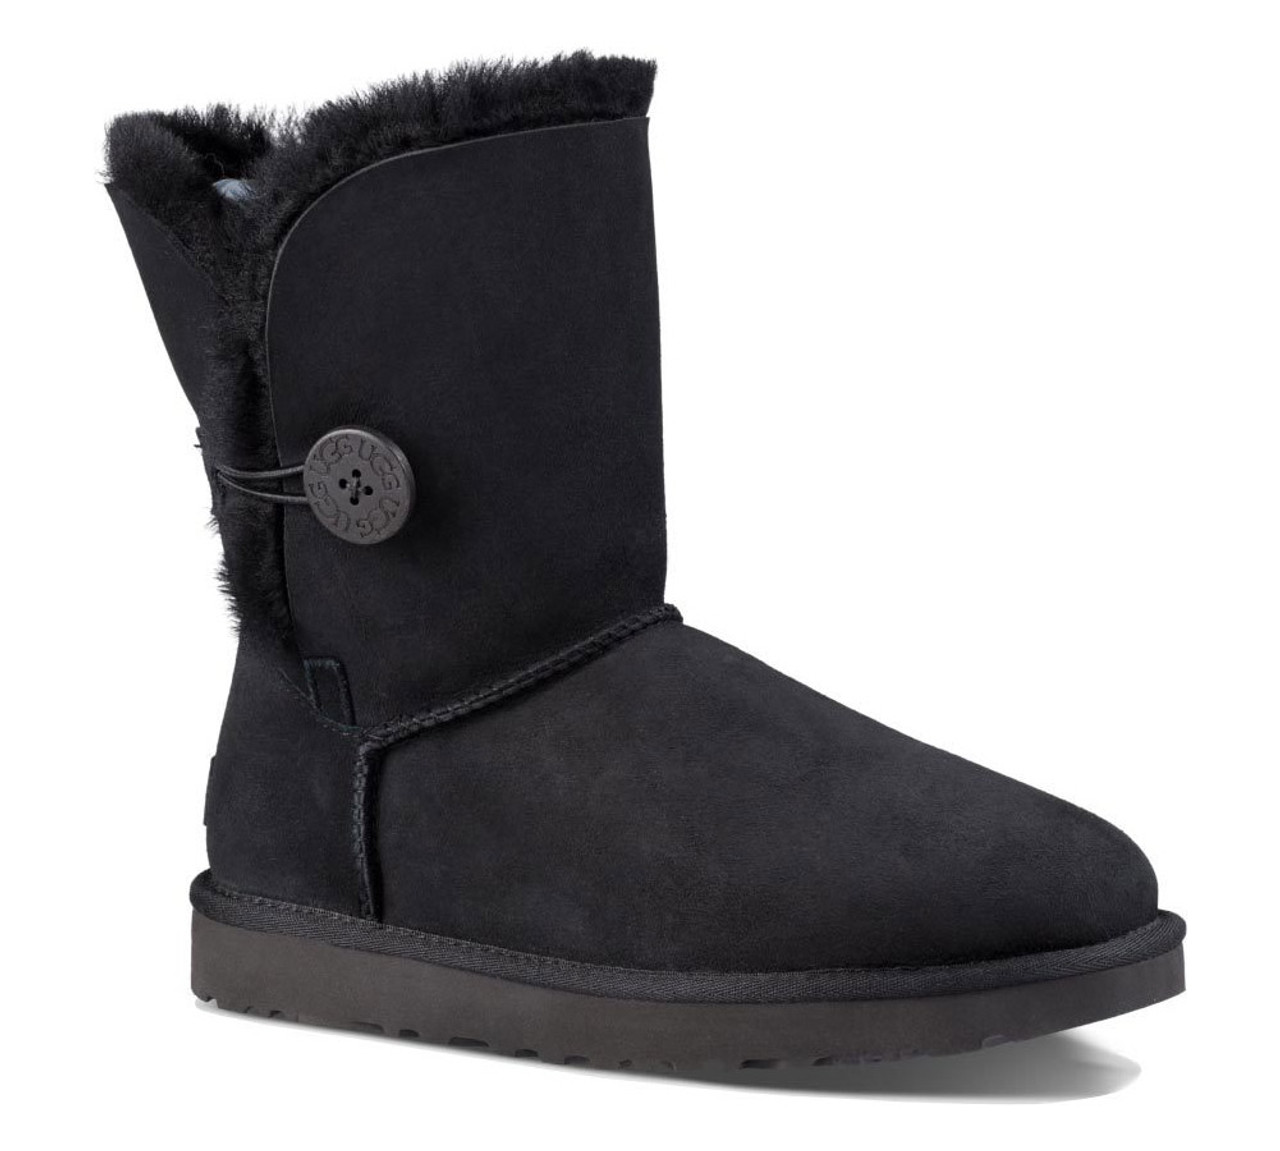 5593be1a4f0 UGG Women's Bailey Button II Boot Black